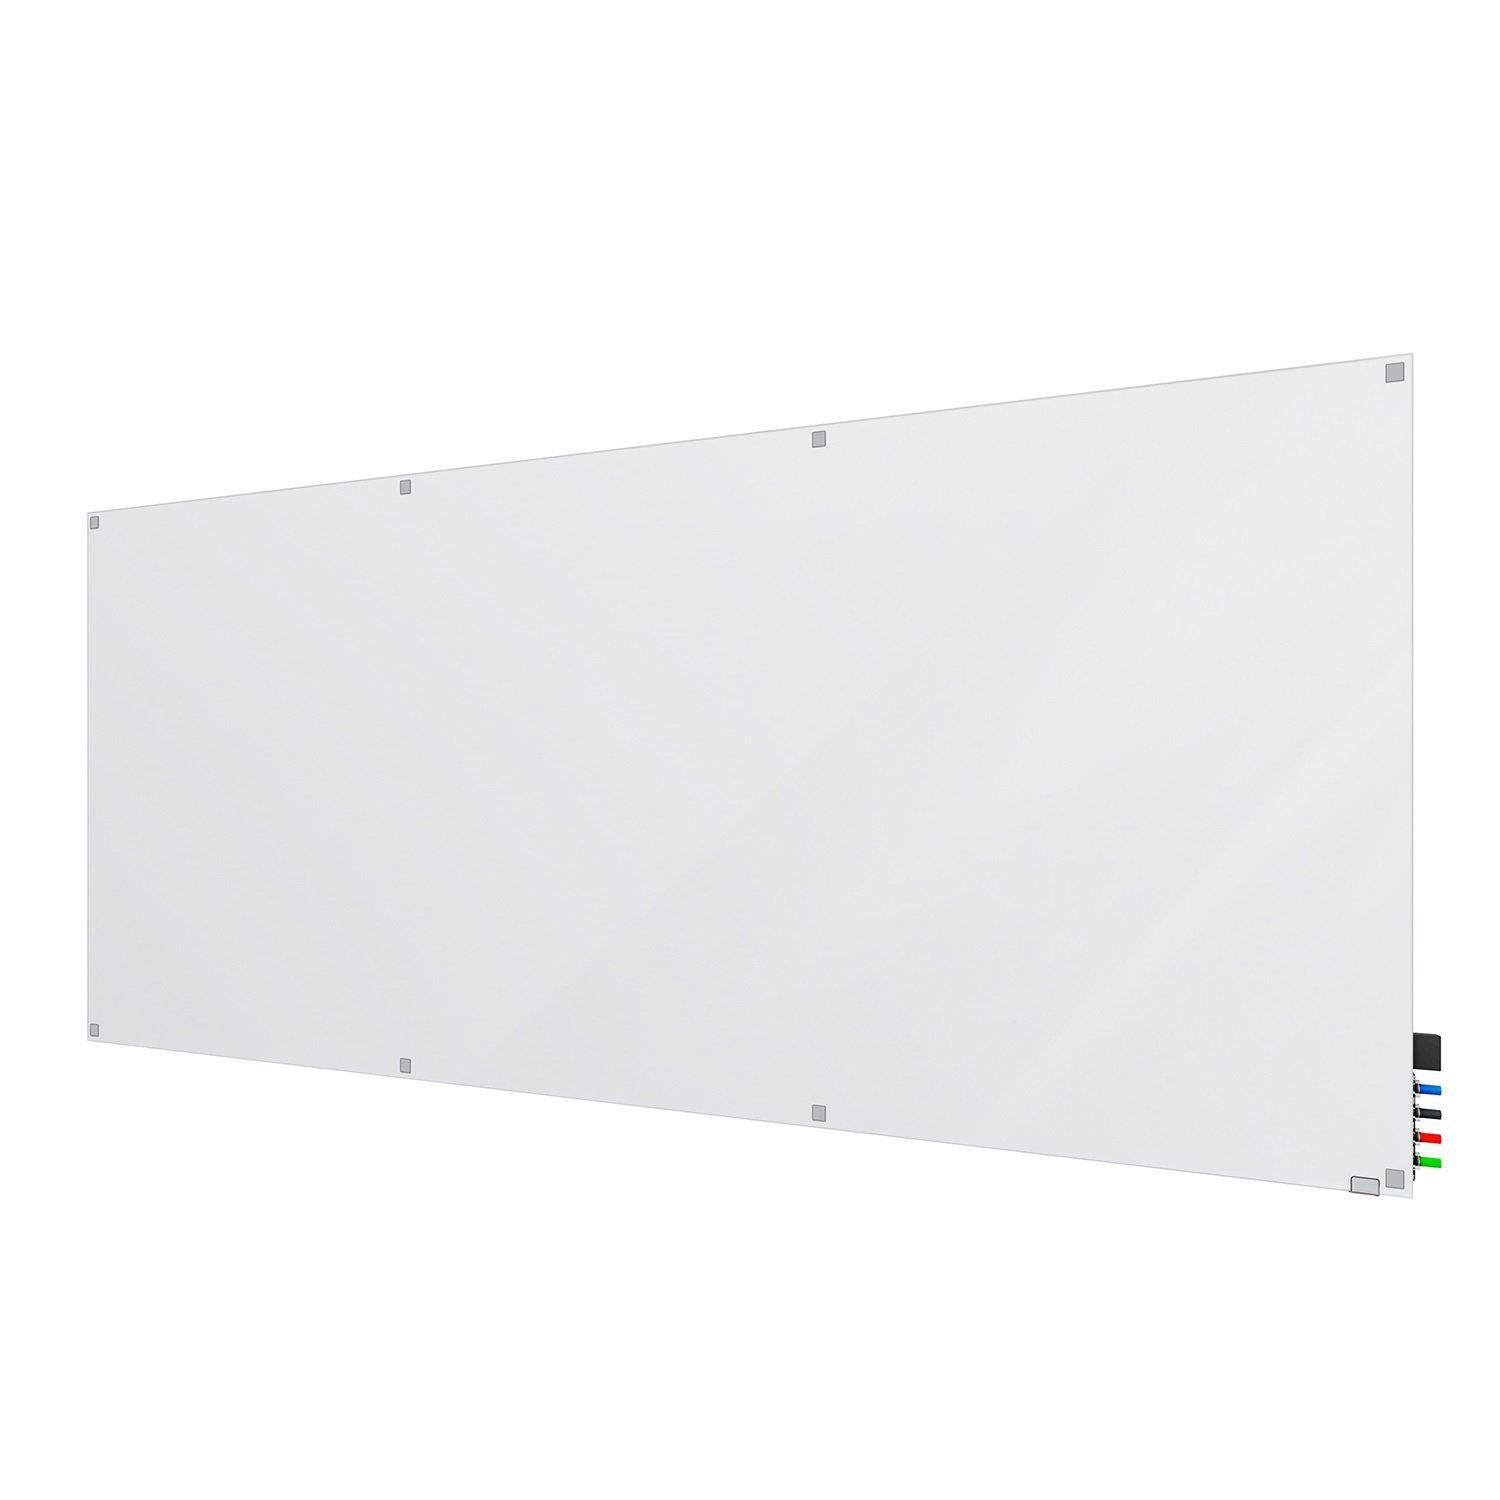 Harmony Frosted Glassboard, Non-Magnetic, Square Corners, 4' H x 10' W